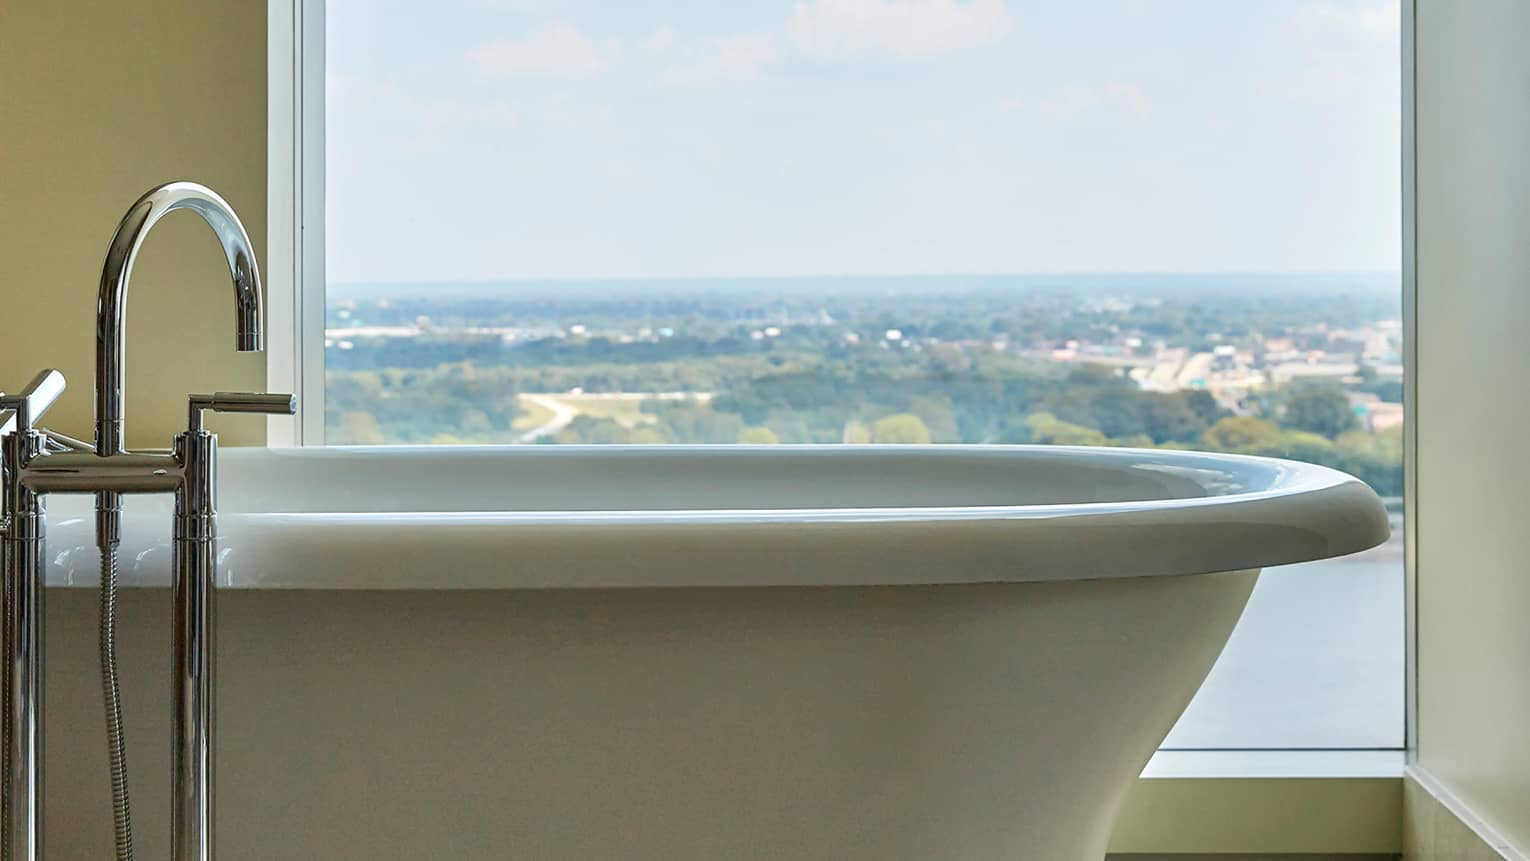 Close-up of large free-standing white tub against window overlooking river